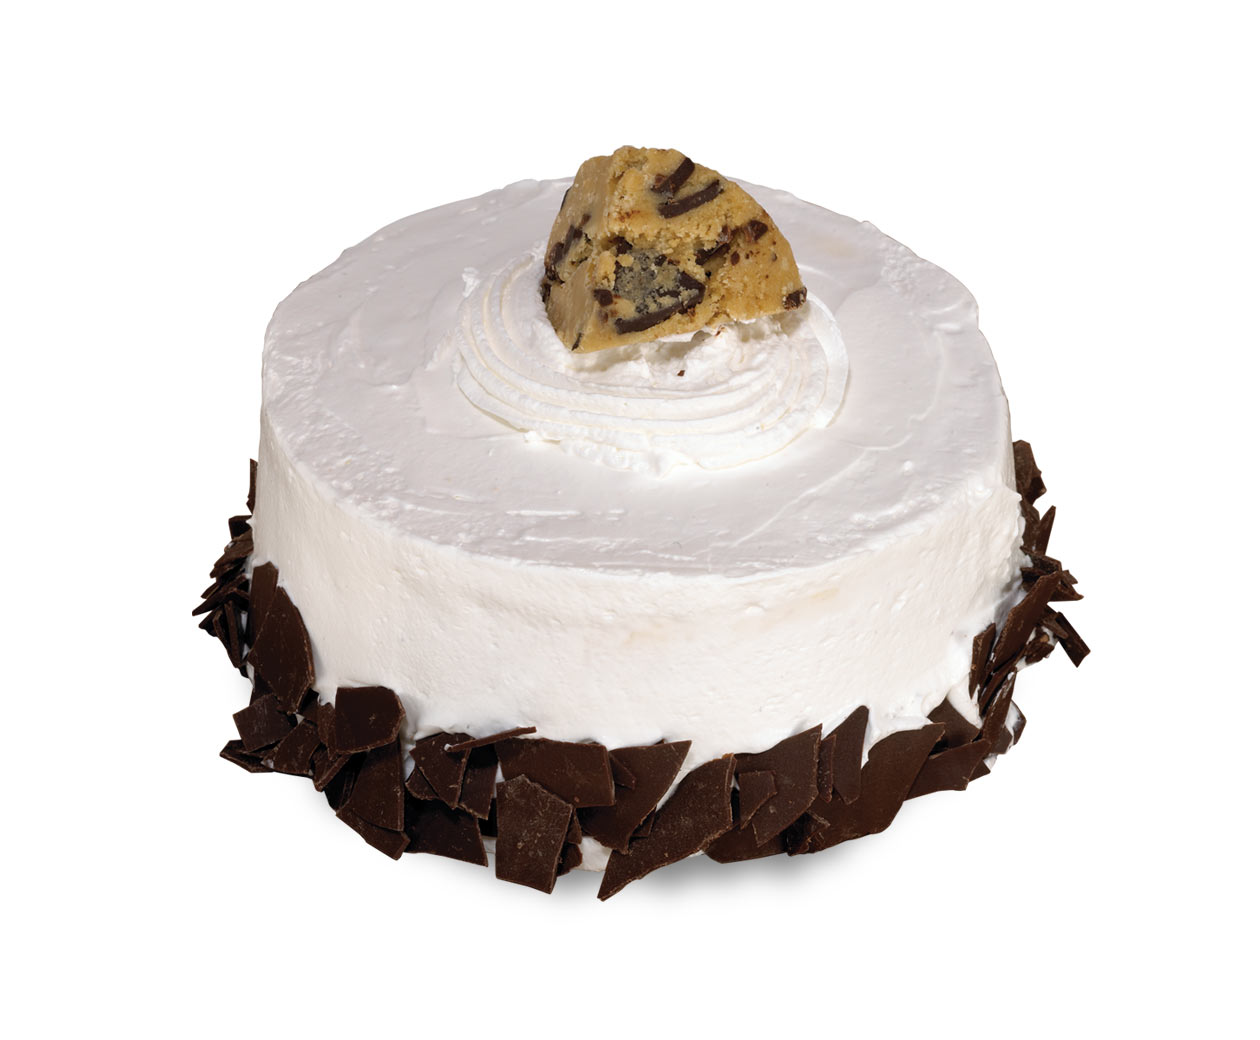 Cold Stone Creamery. Cold Stone is offer a sweet deal for National Ice Cream Day —and for any day consumers crave a cup or cone fresh off that marble mixing slab: a buy-one-get-one free.